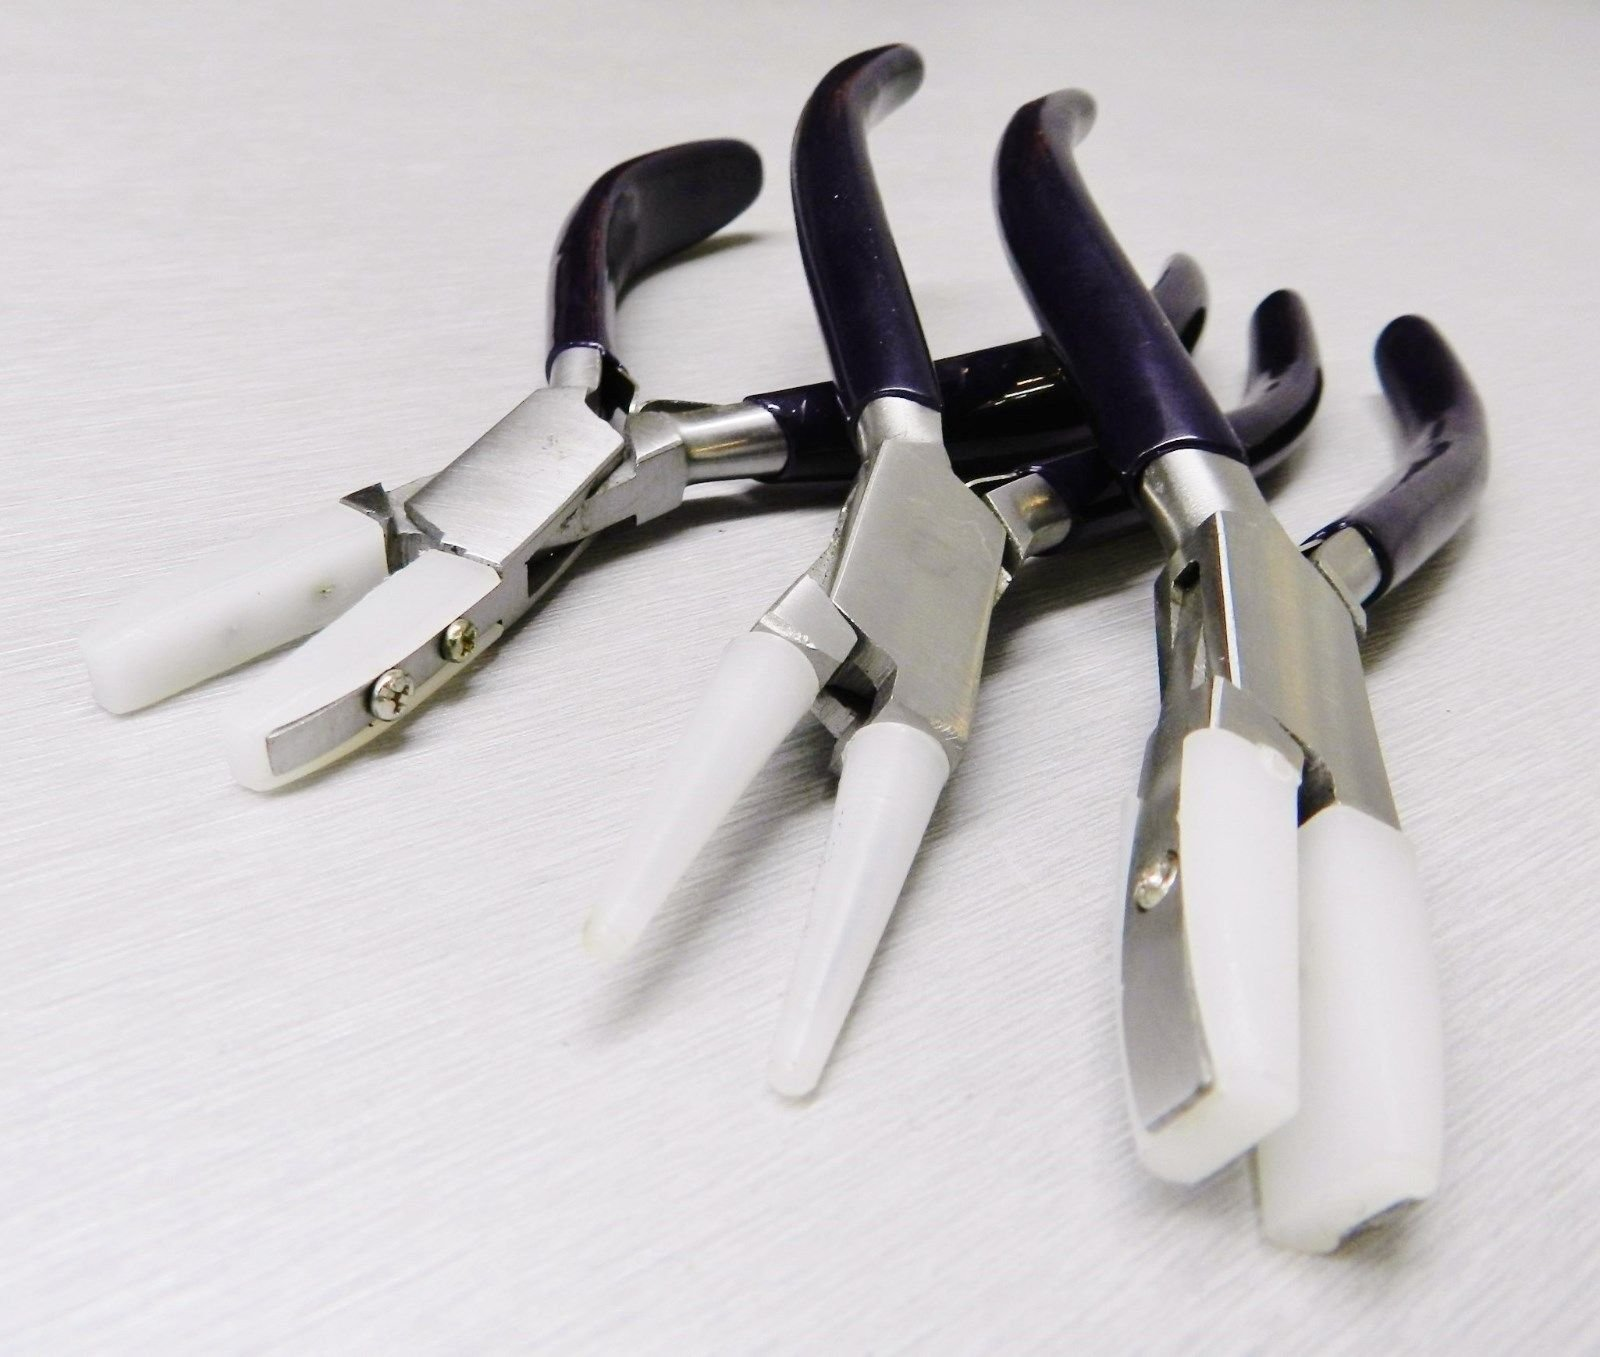 NYLON JAW PLIERS HD 3 SET JEWELRY CRAFT BEAD WIRE WORKING BENDING FORMING TOOLS (10E) by Novel